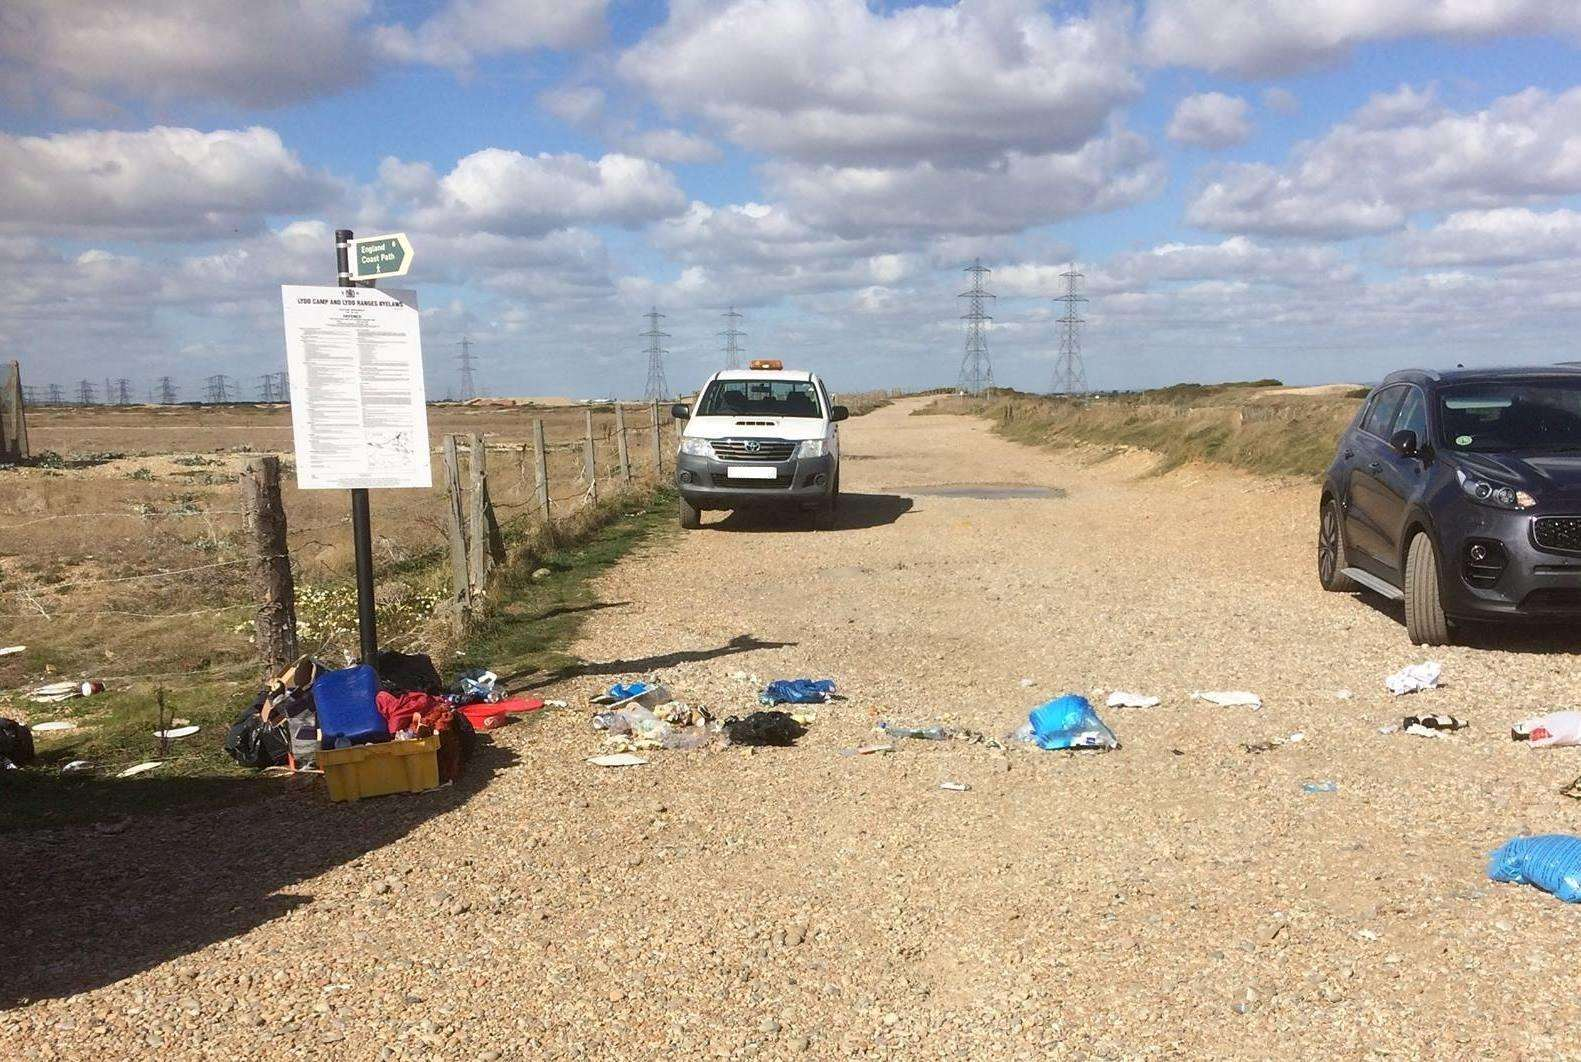 Some of the flytipping in Dengemarsh Road, Lydd. Credit: Alan Wood (4551594)